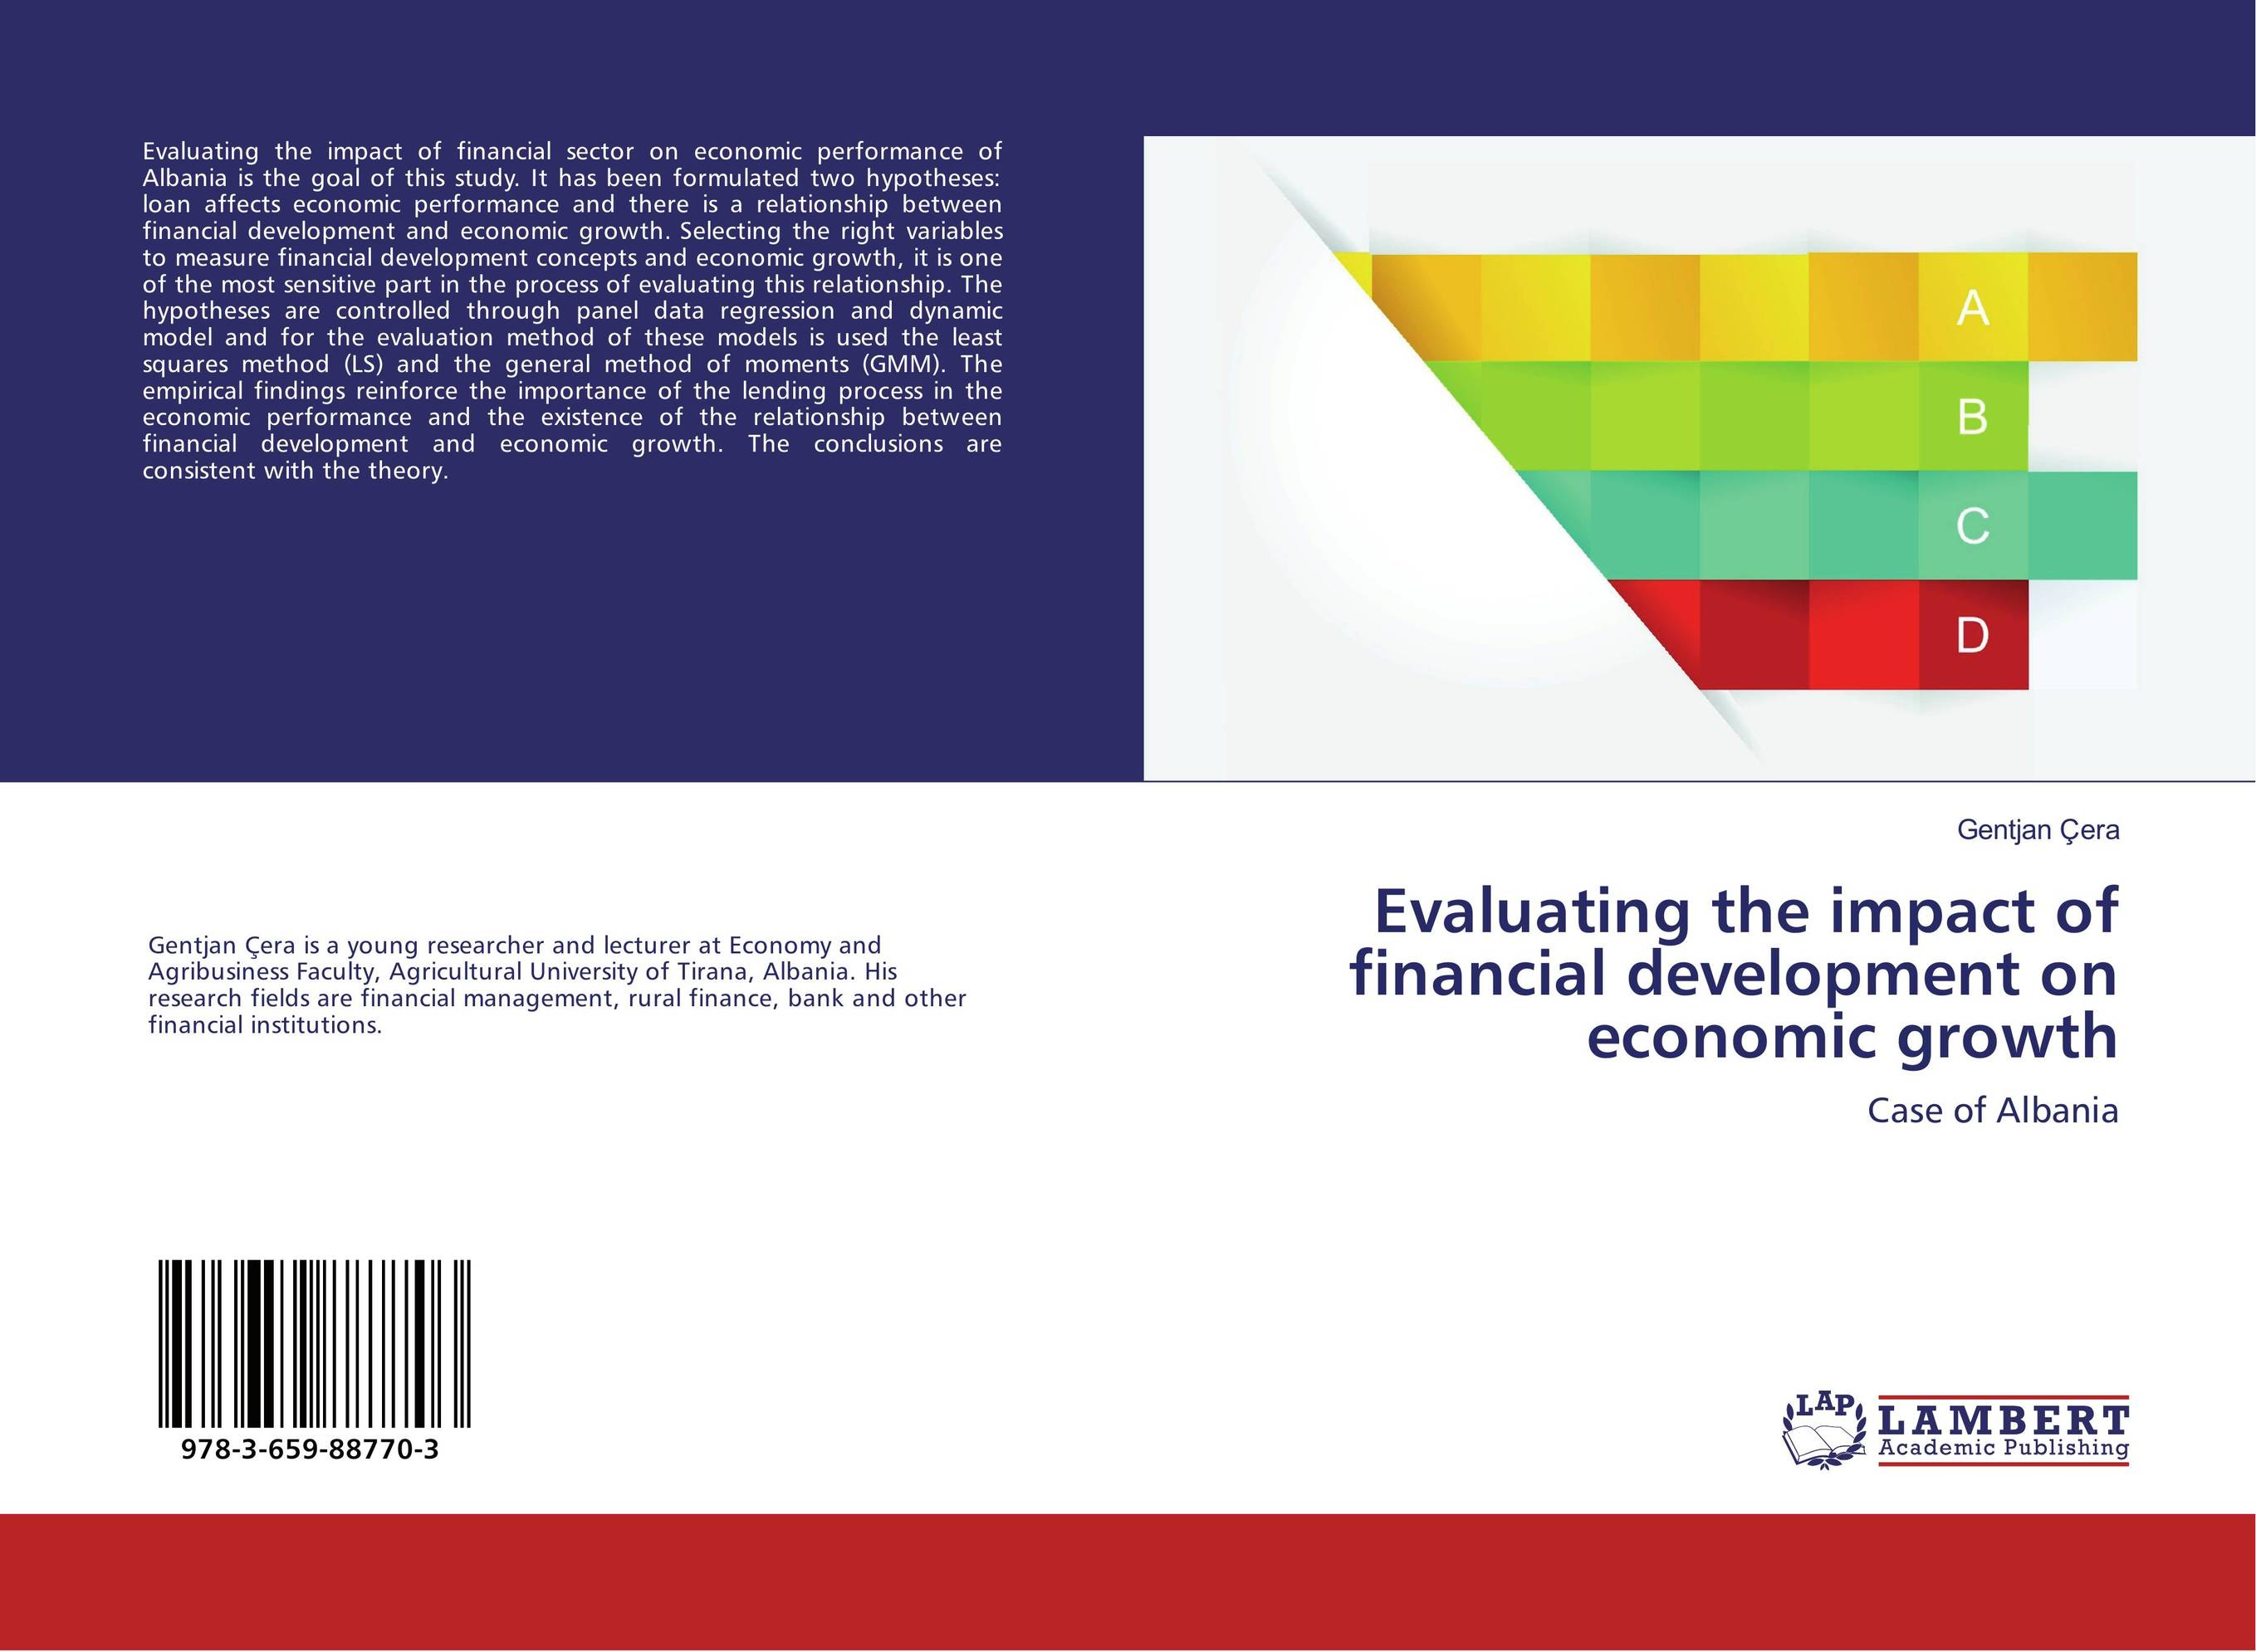 Evaluating the impact of financial development on economic growth impact of stock market performance indices on economic growth